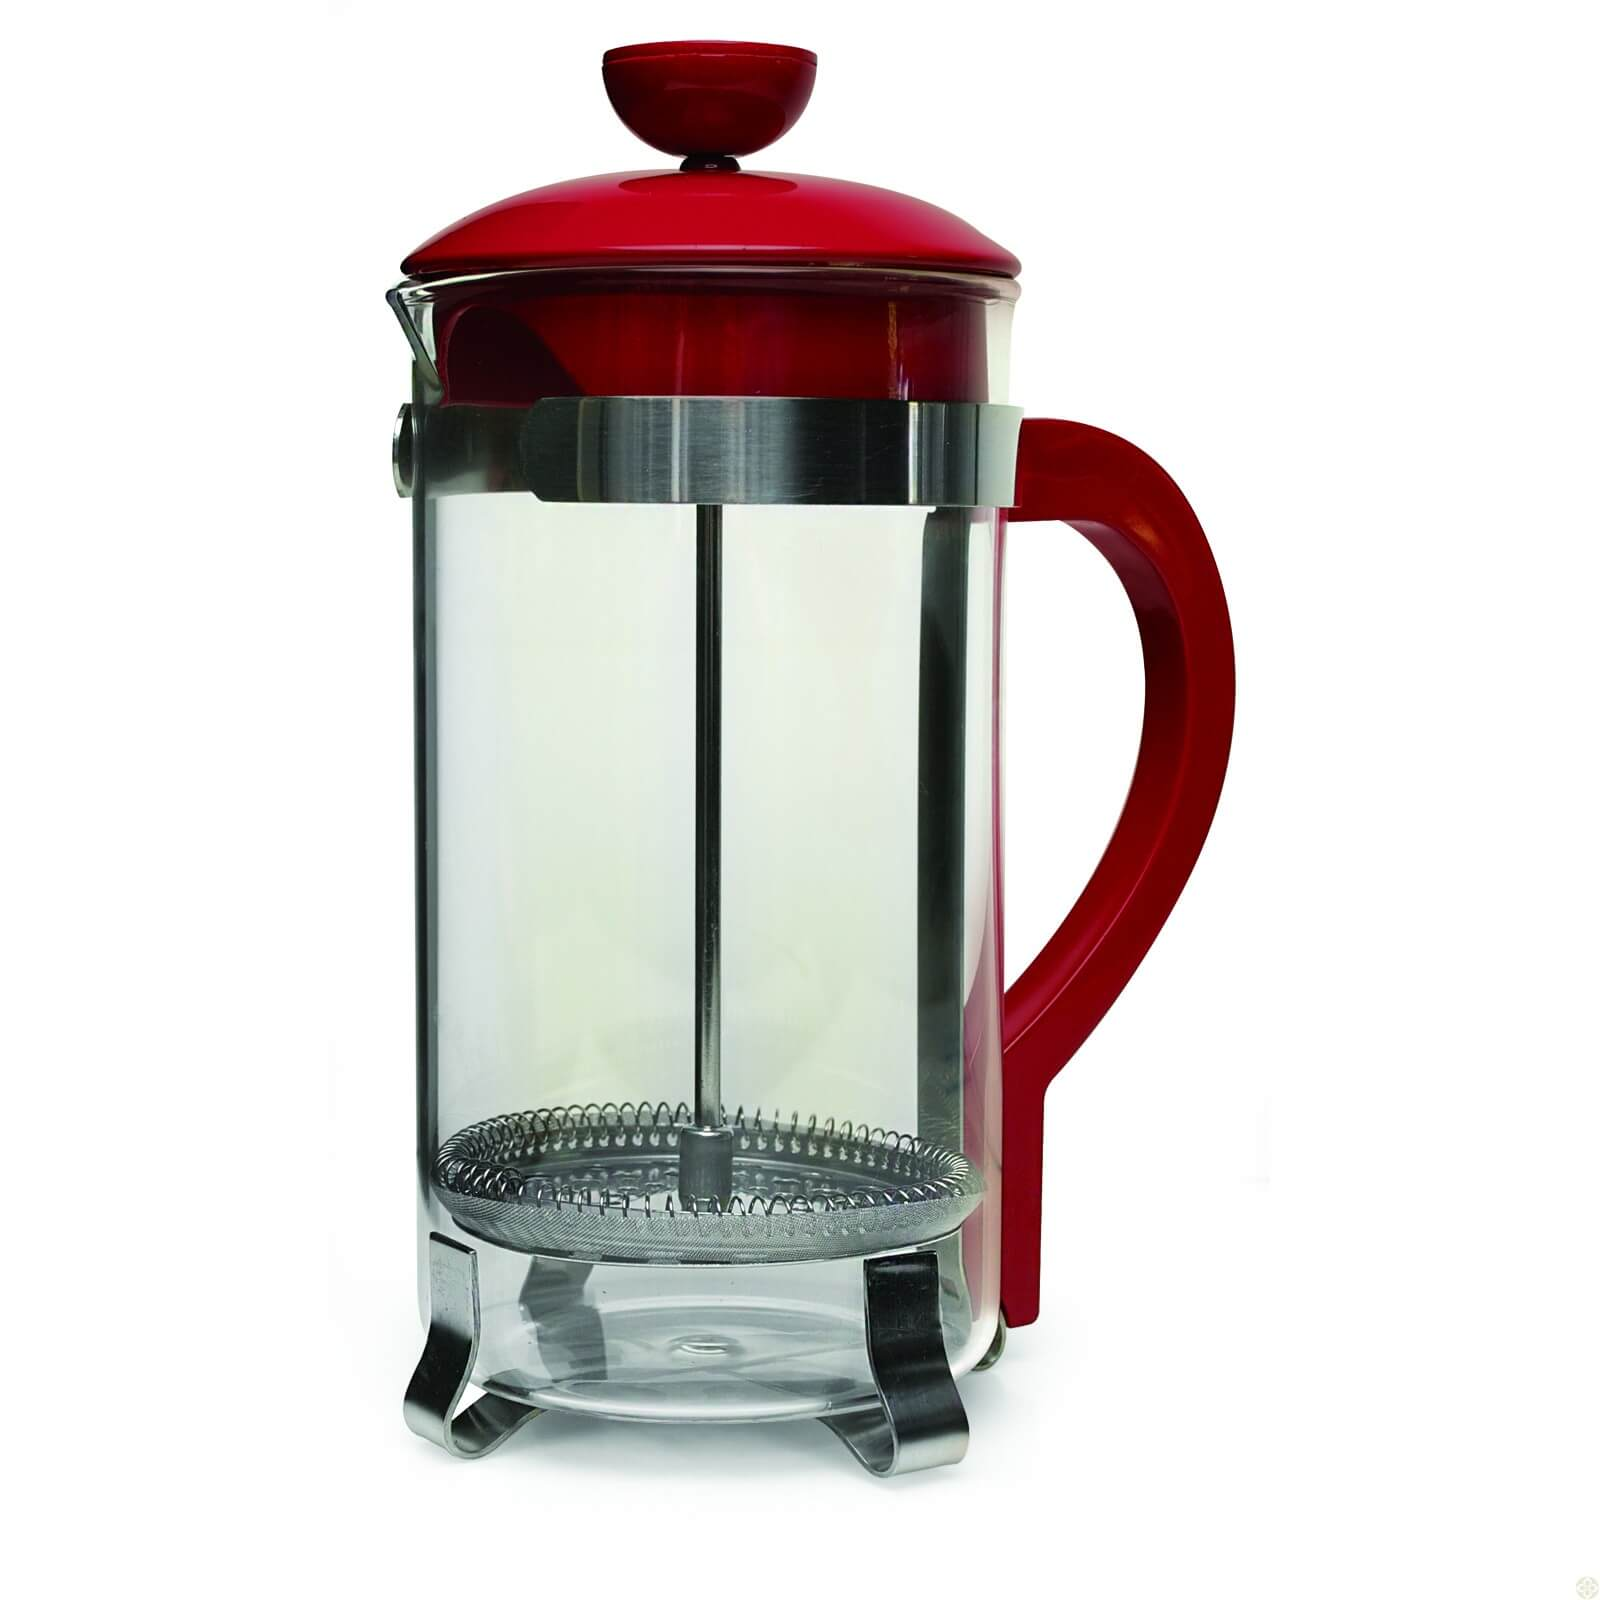 2d19489a7733 Classic Coffee Press 8 cup - Red